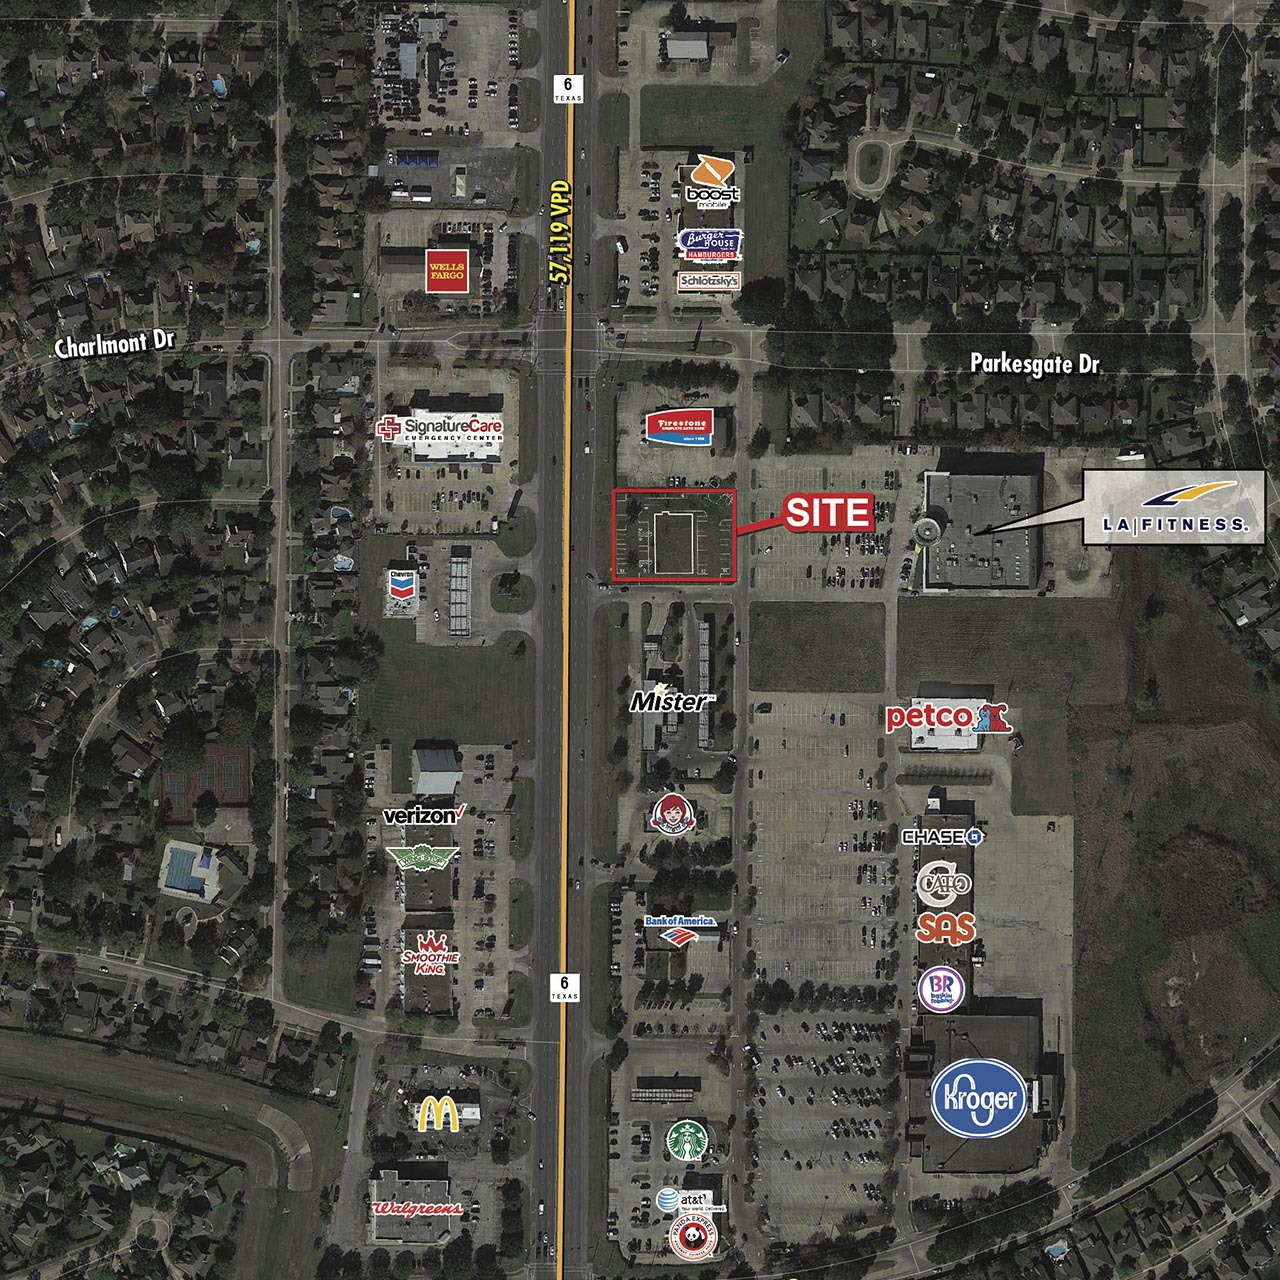 7,500 SF Shopping Center or Pad Site Available featured image